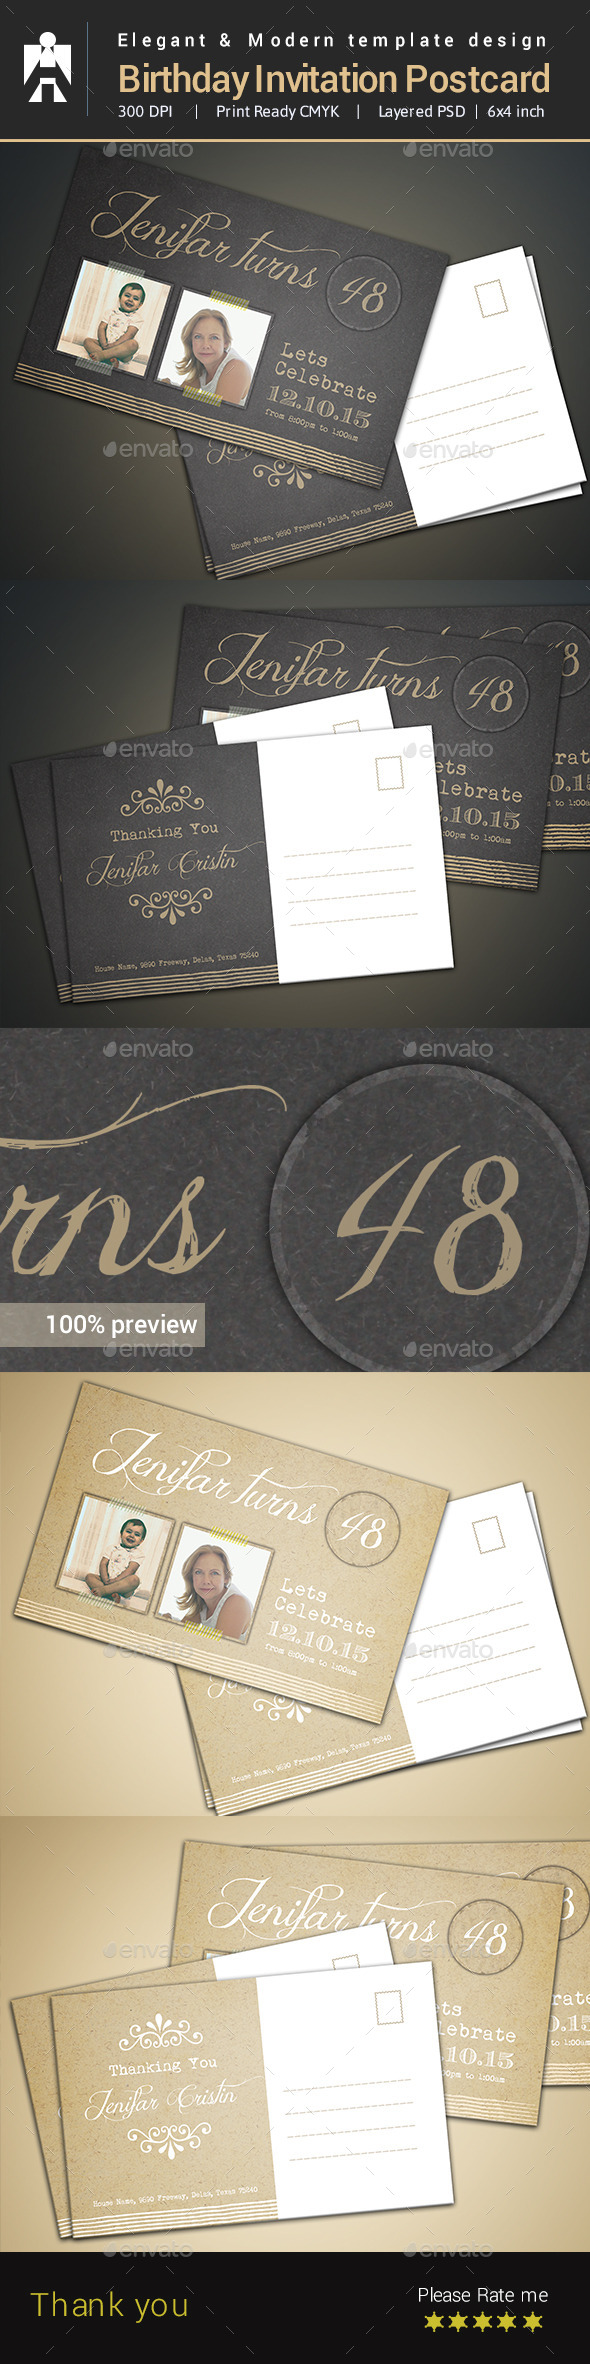 GraphicRiver Birthday Invitation Postcard Template 9242157